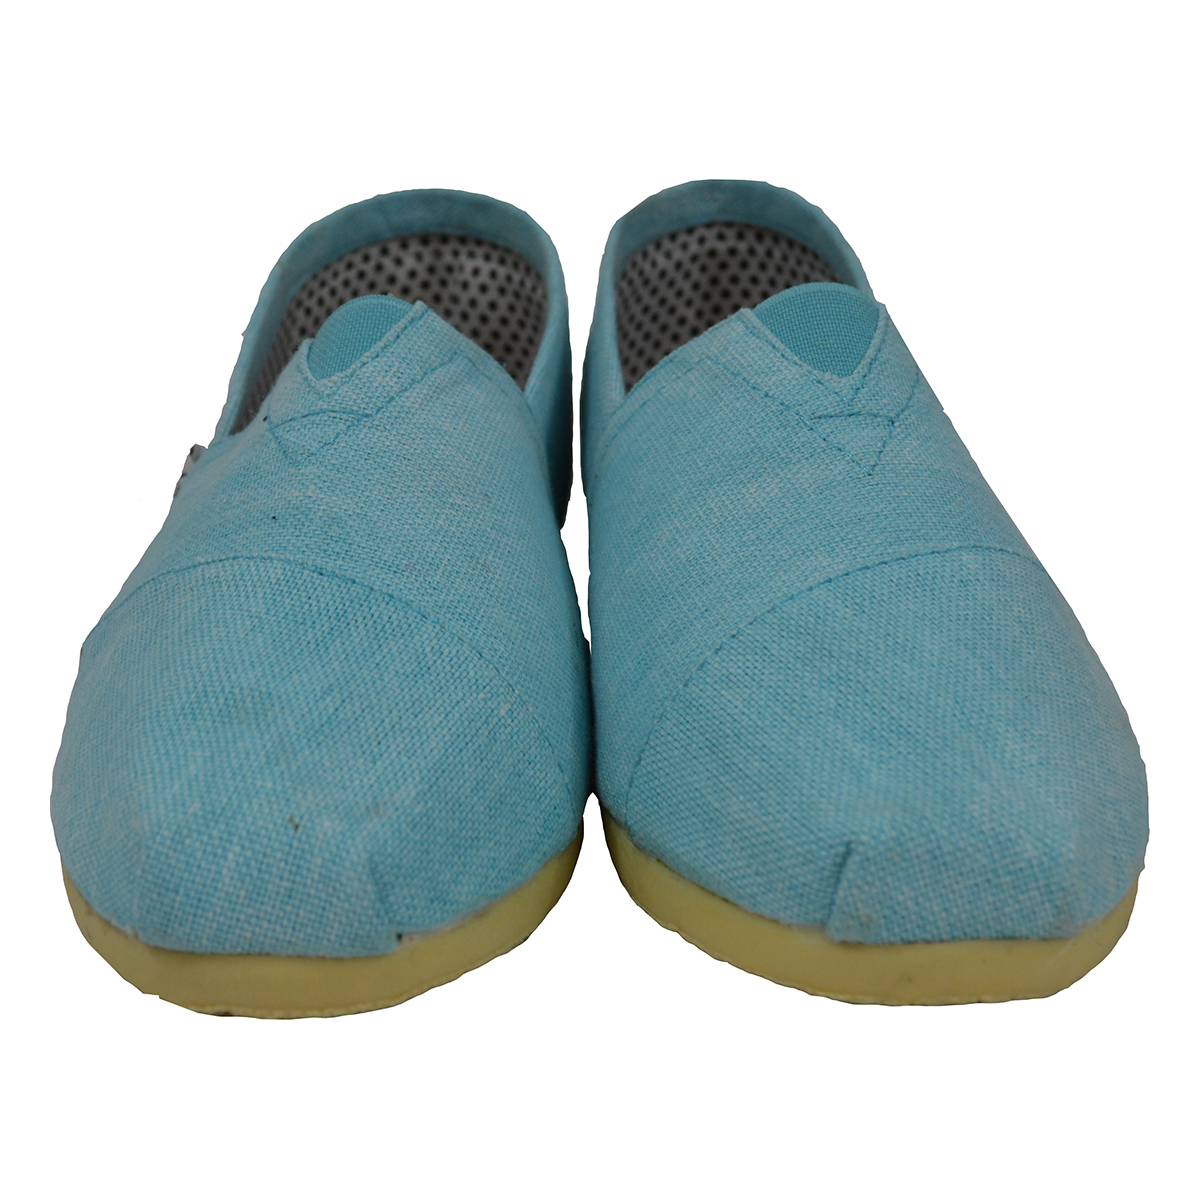 shoes of soul flats casual fashion slip on